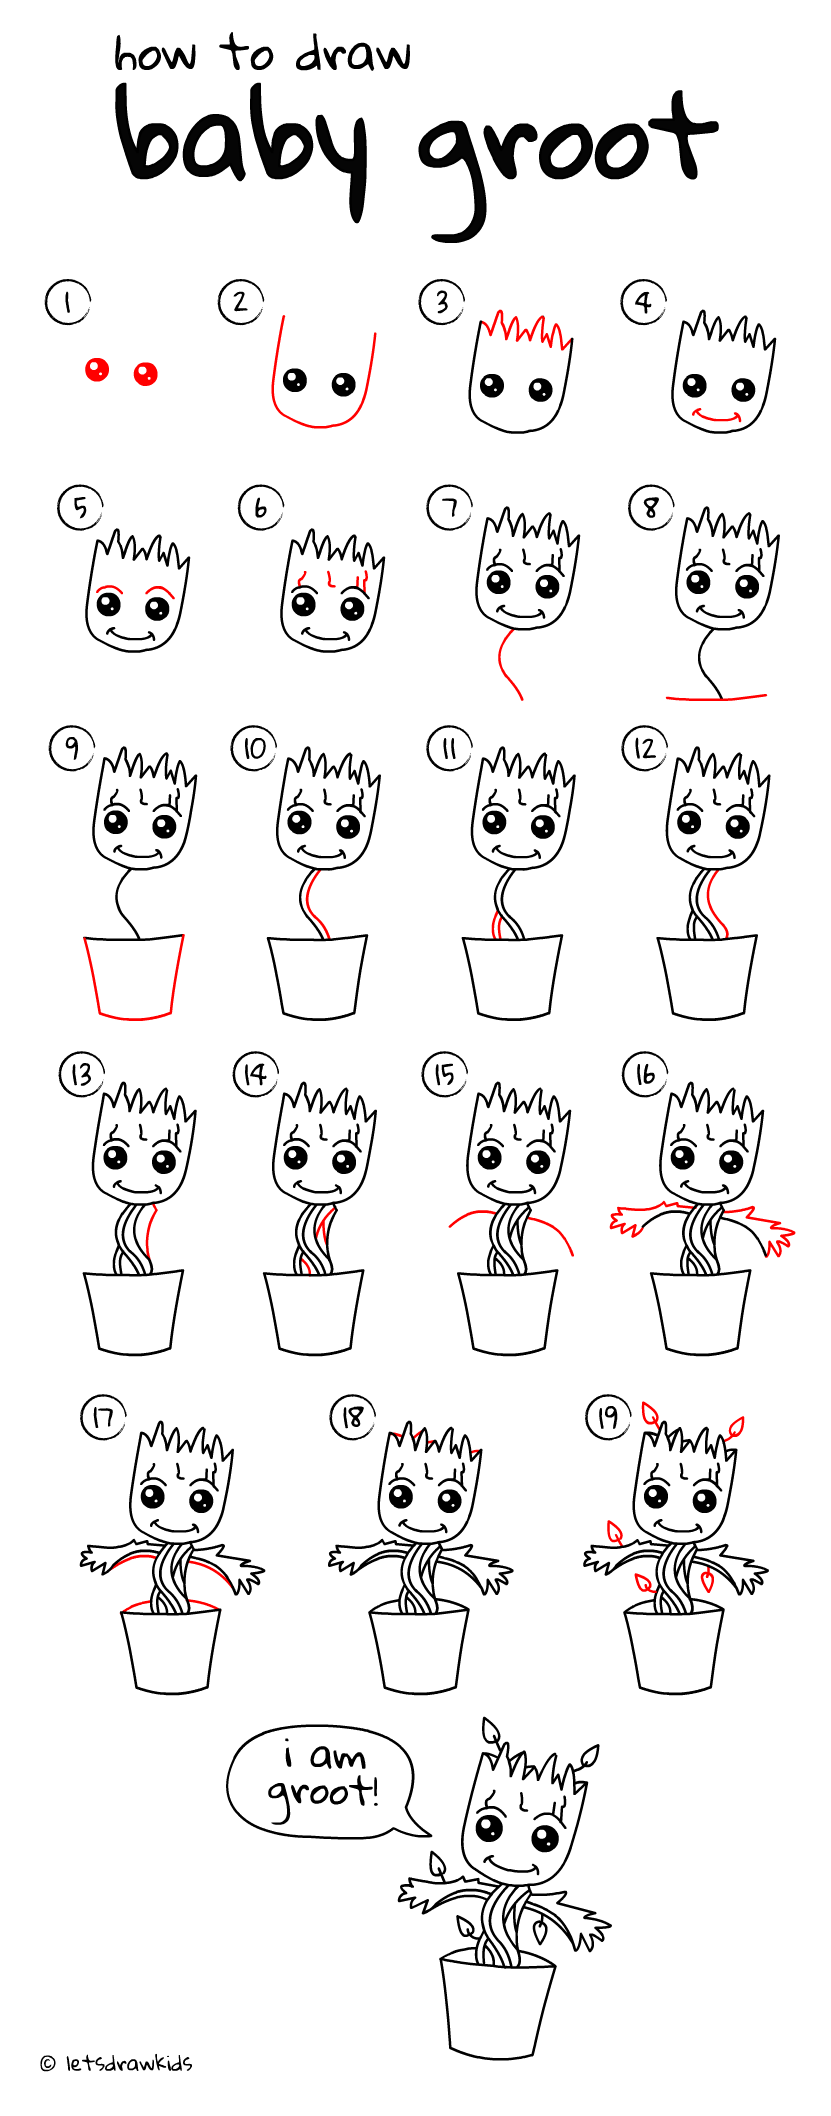 How To Draw Baby Groot Easy Drawing Step By Step